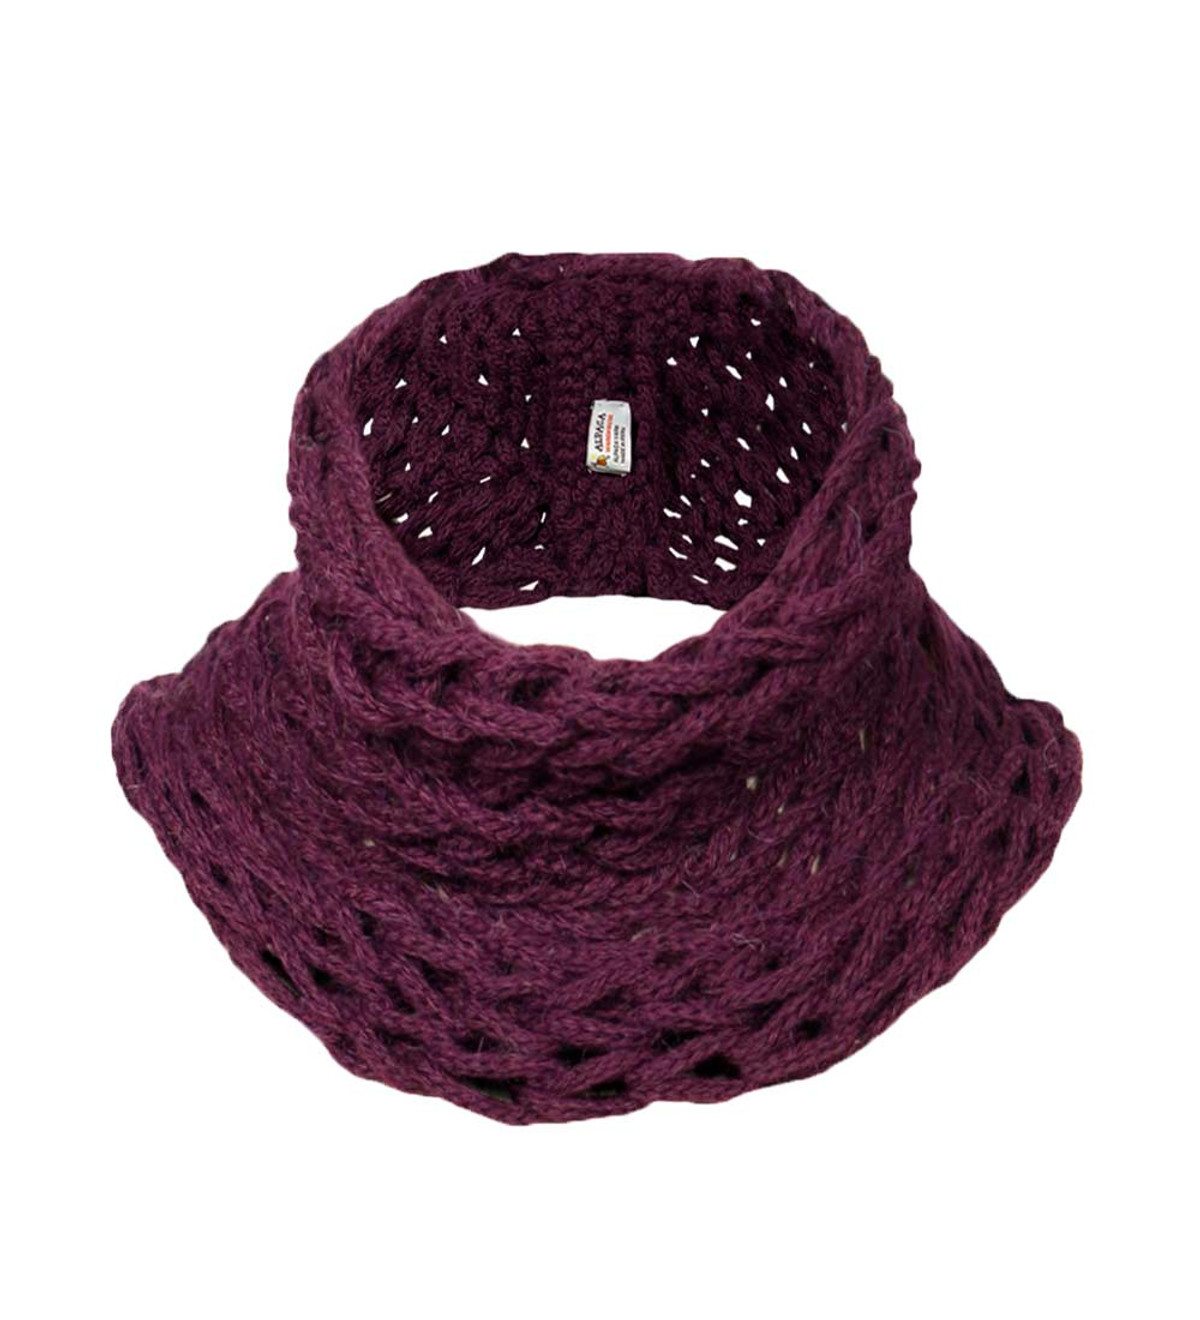 9a63641bc4 Women's Alpaca Wool Blend Winter Needle Knitted Soft Warm Infinity Scarf  Solid Color